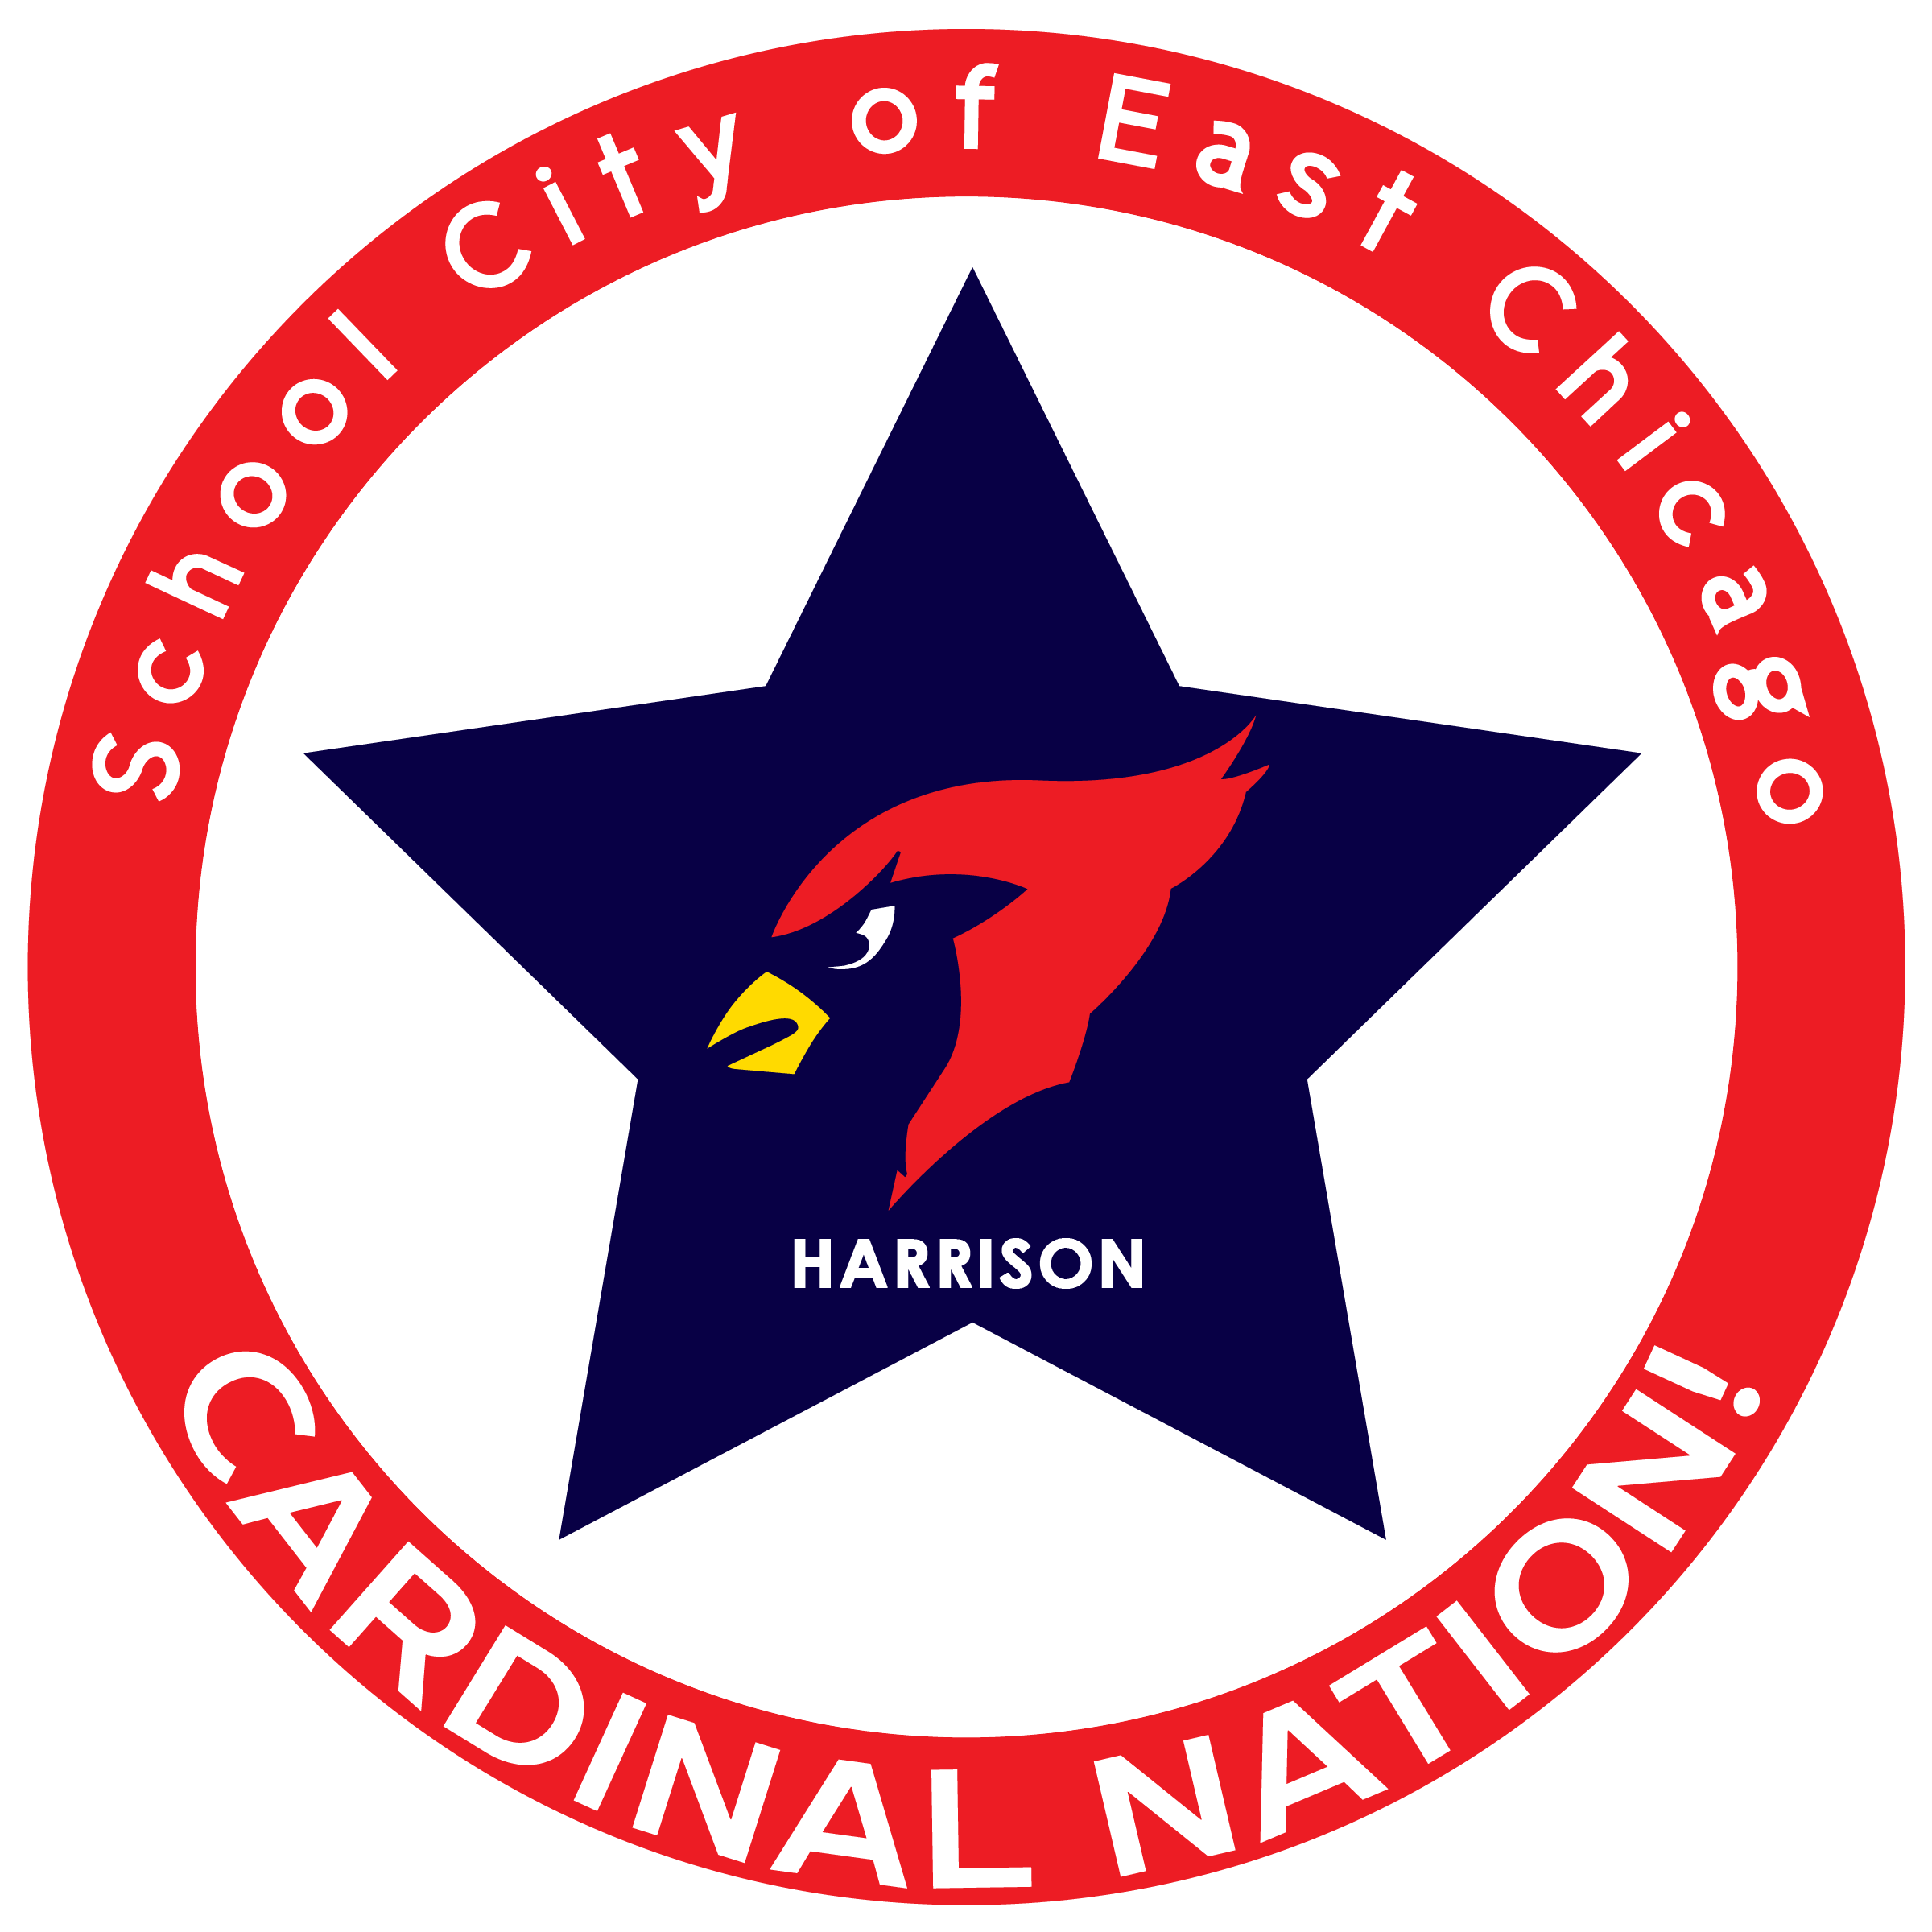 Harrison Elementary School Home Page